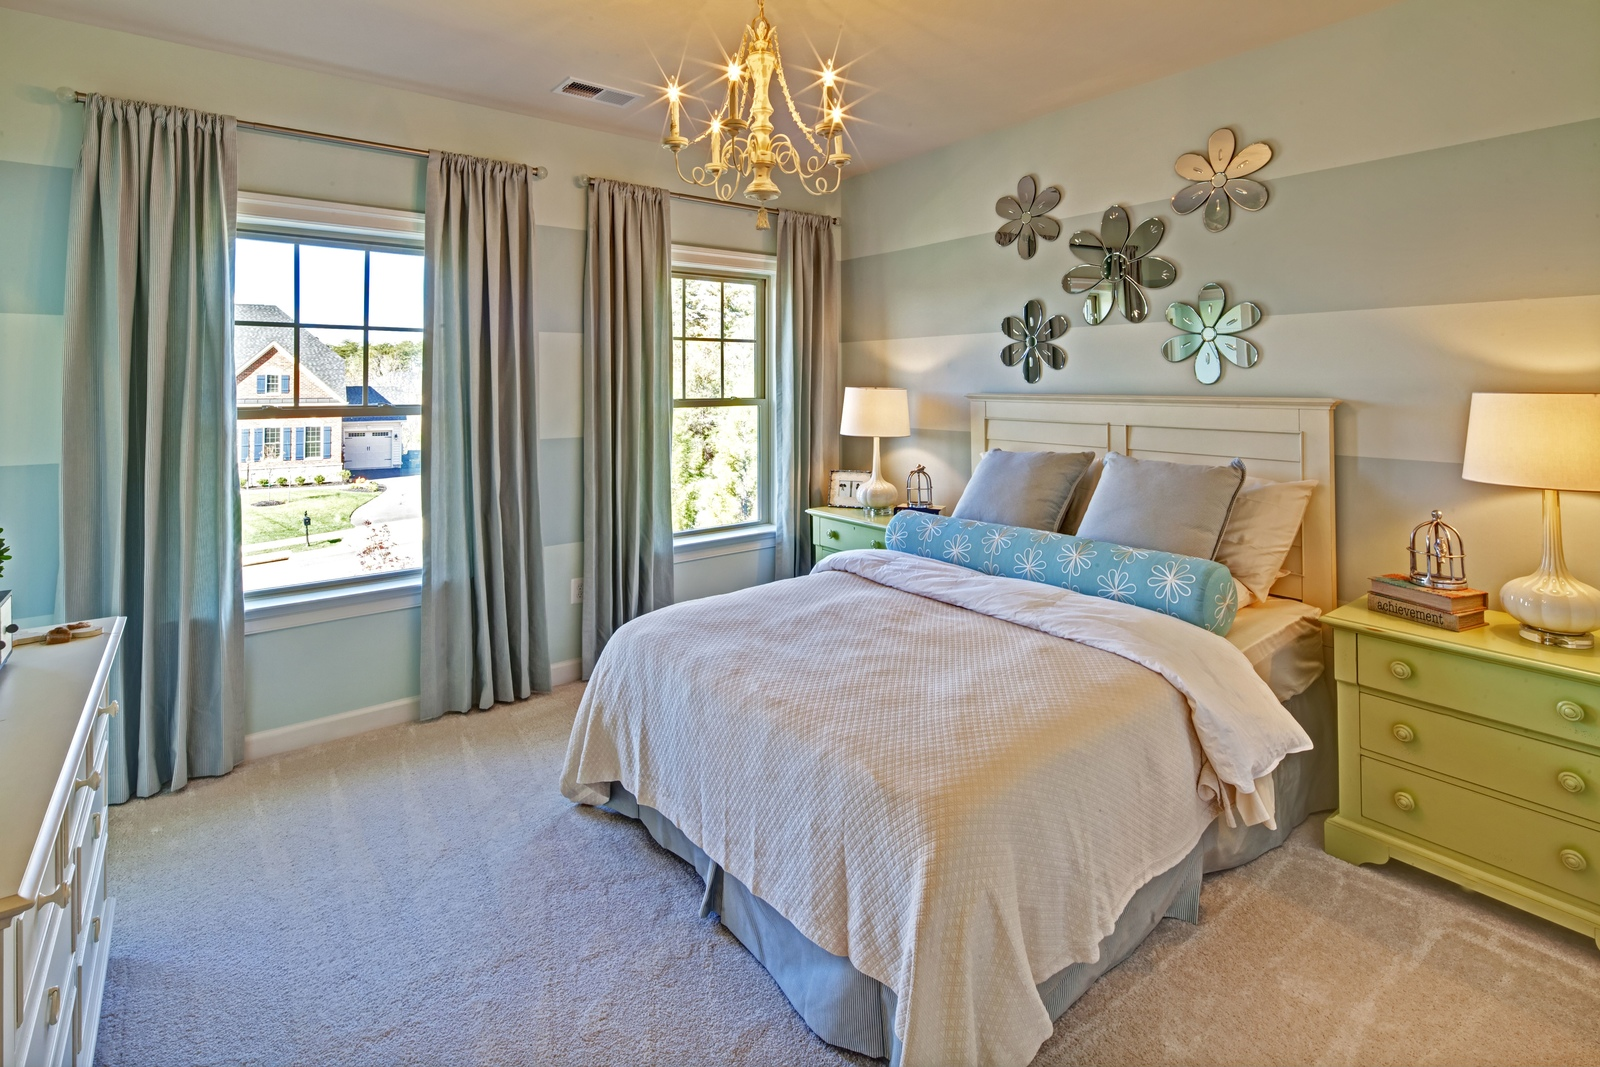 NVHomes' expertly designed floorplans offer bedrooms with beautifully crafted trim, ample natural light and high-end carpet.